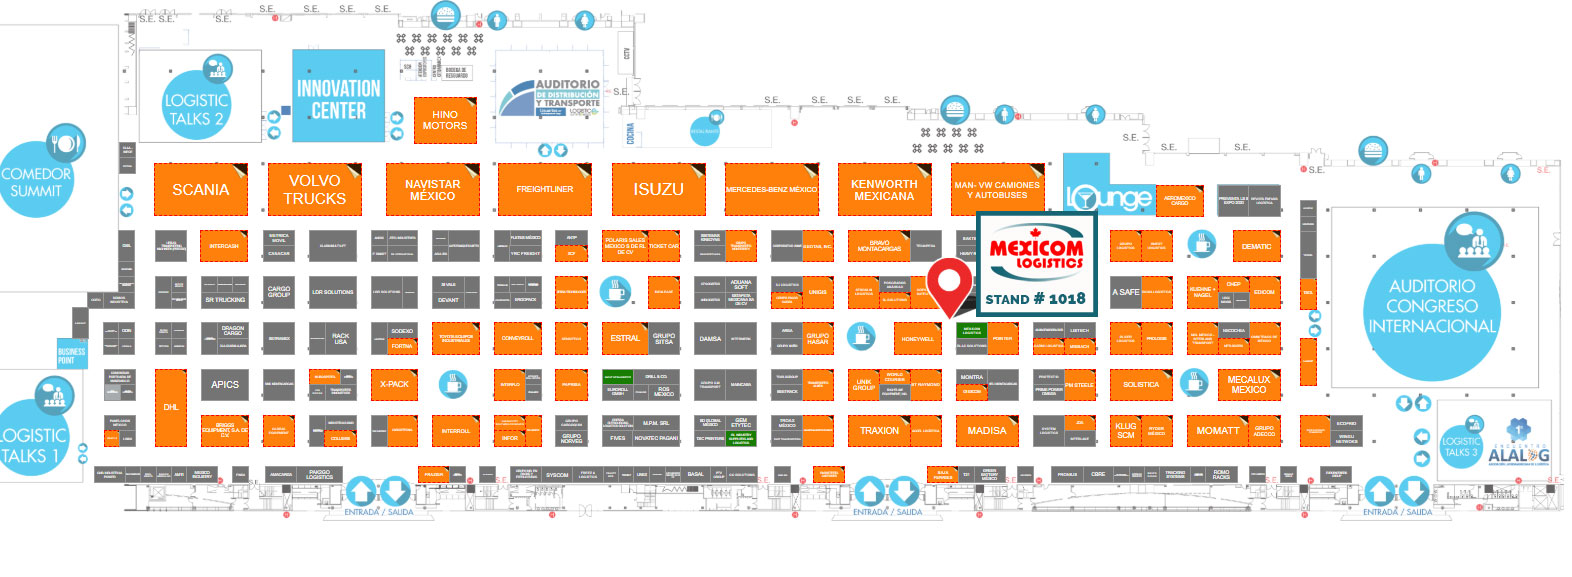 map-mexicom-logistics-logistic-summit-expo-2019 | Mexicom